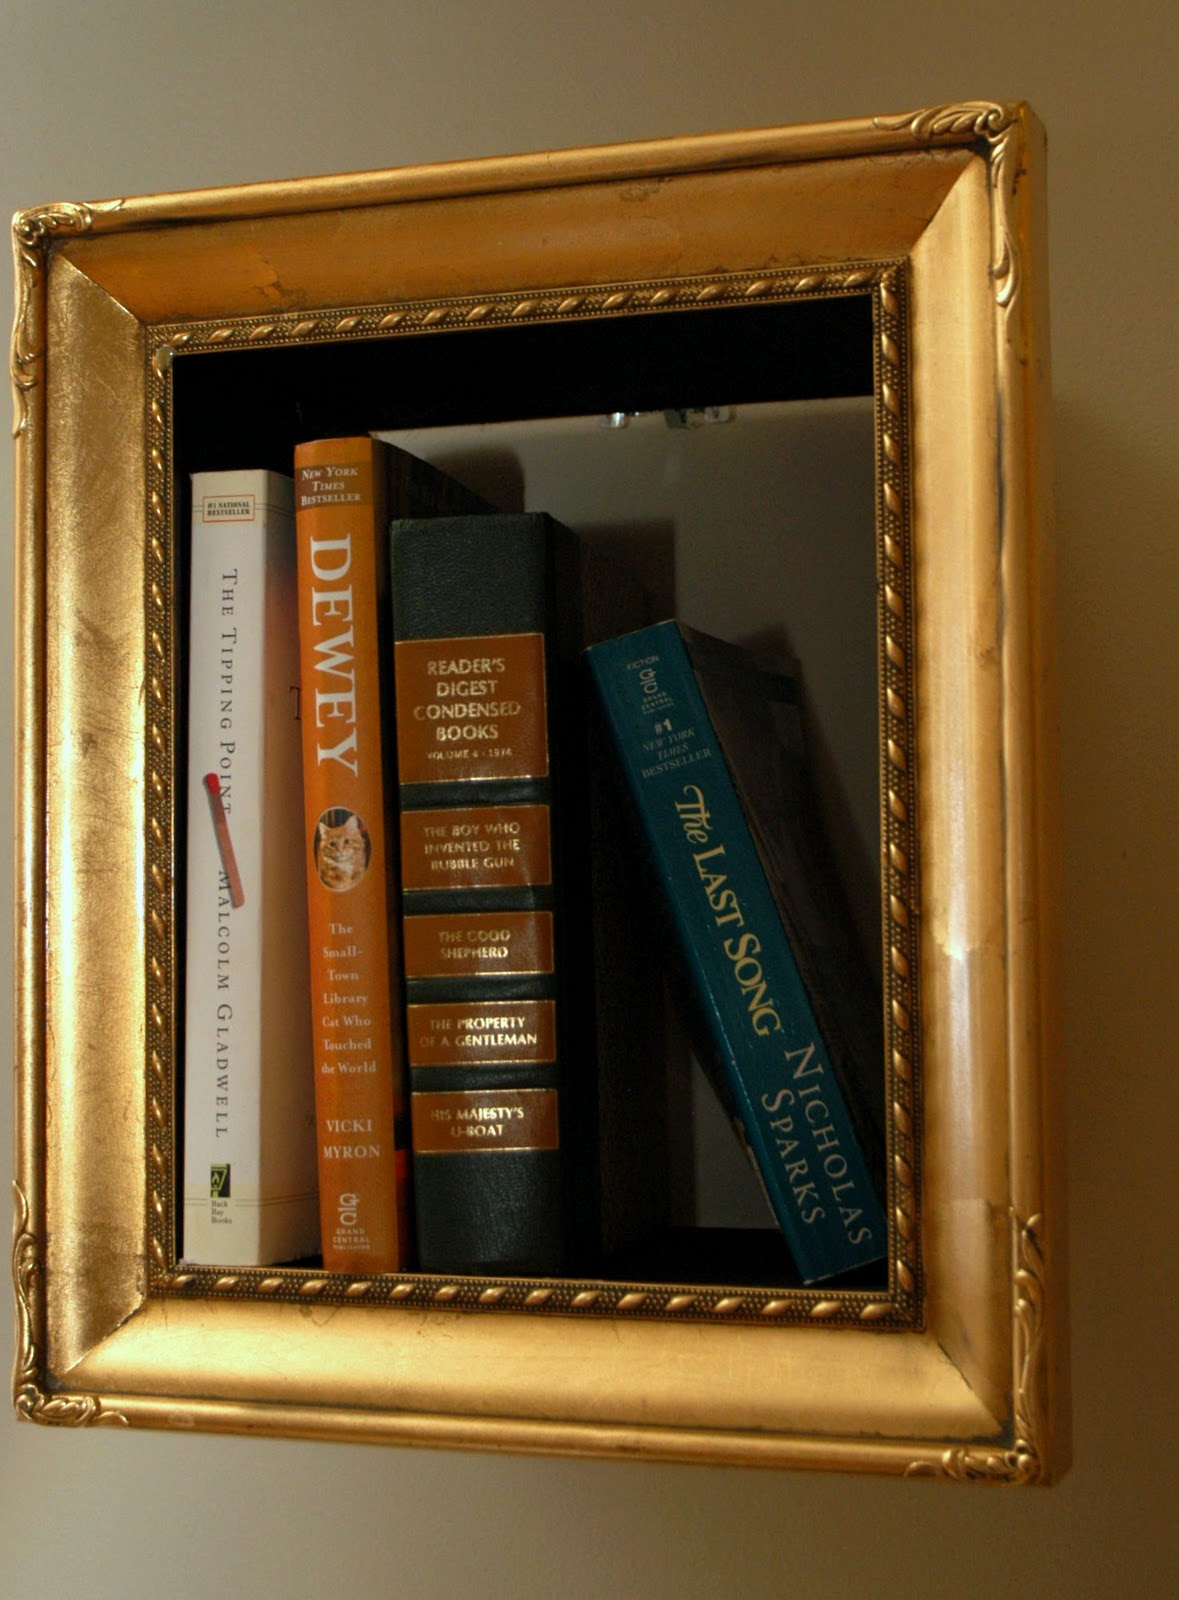 Change of scenery jen and chads place living room unveil small pieces of wood were added to the backs of old frames creating shelves for additional storage we arranged the framed shelves in an asymmetrical jeuxipadfo Gallery